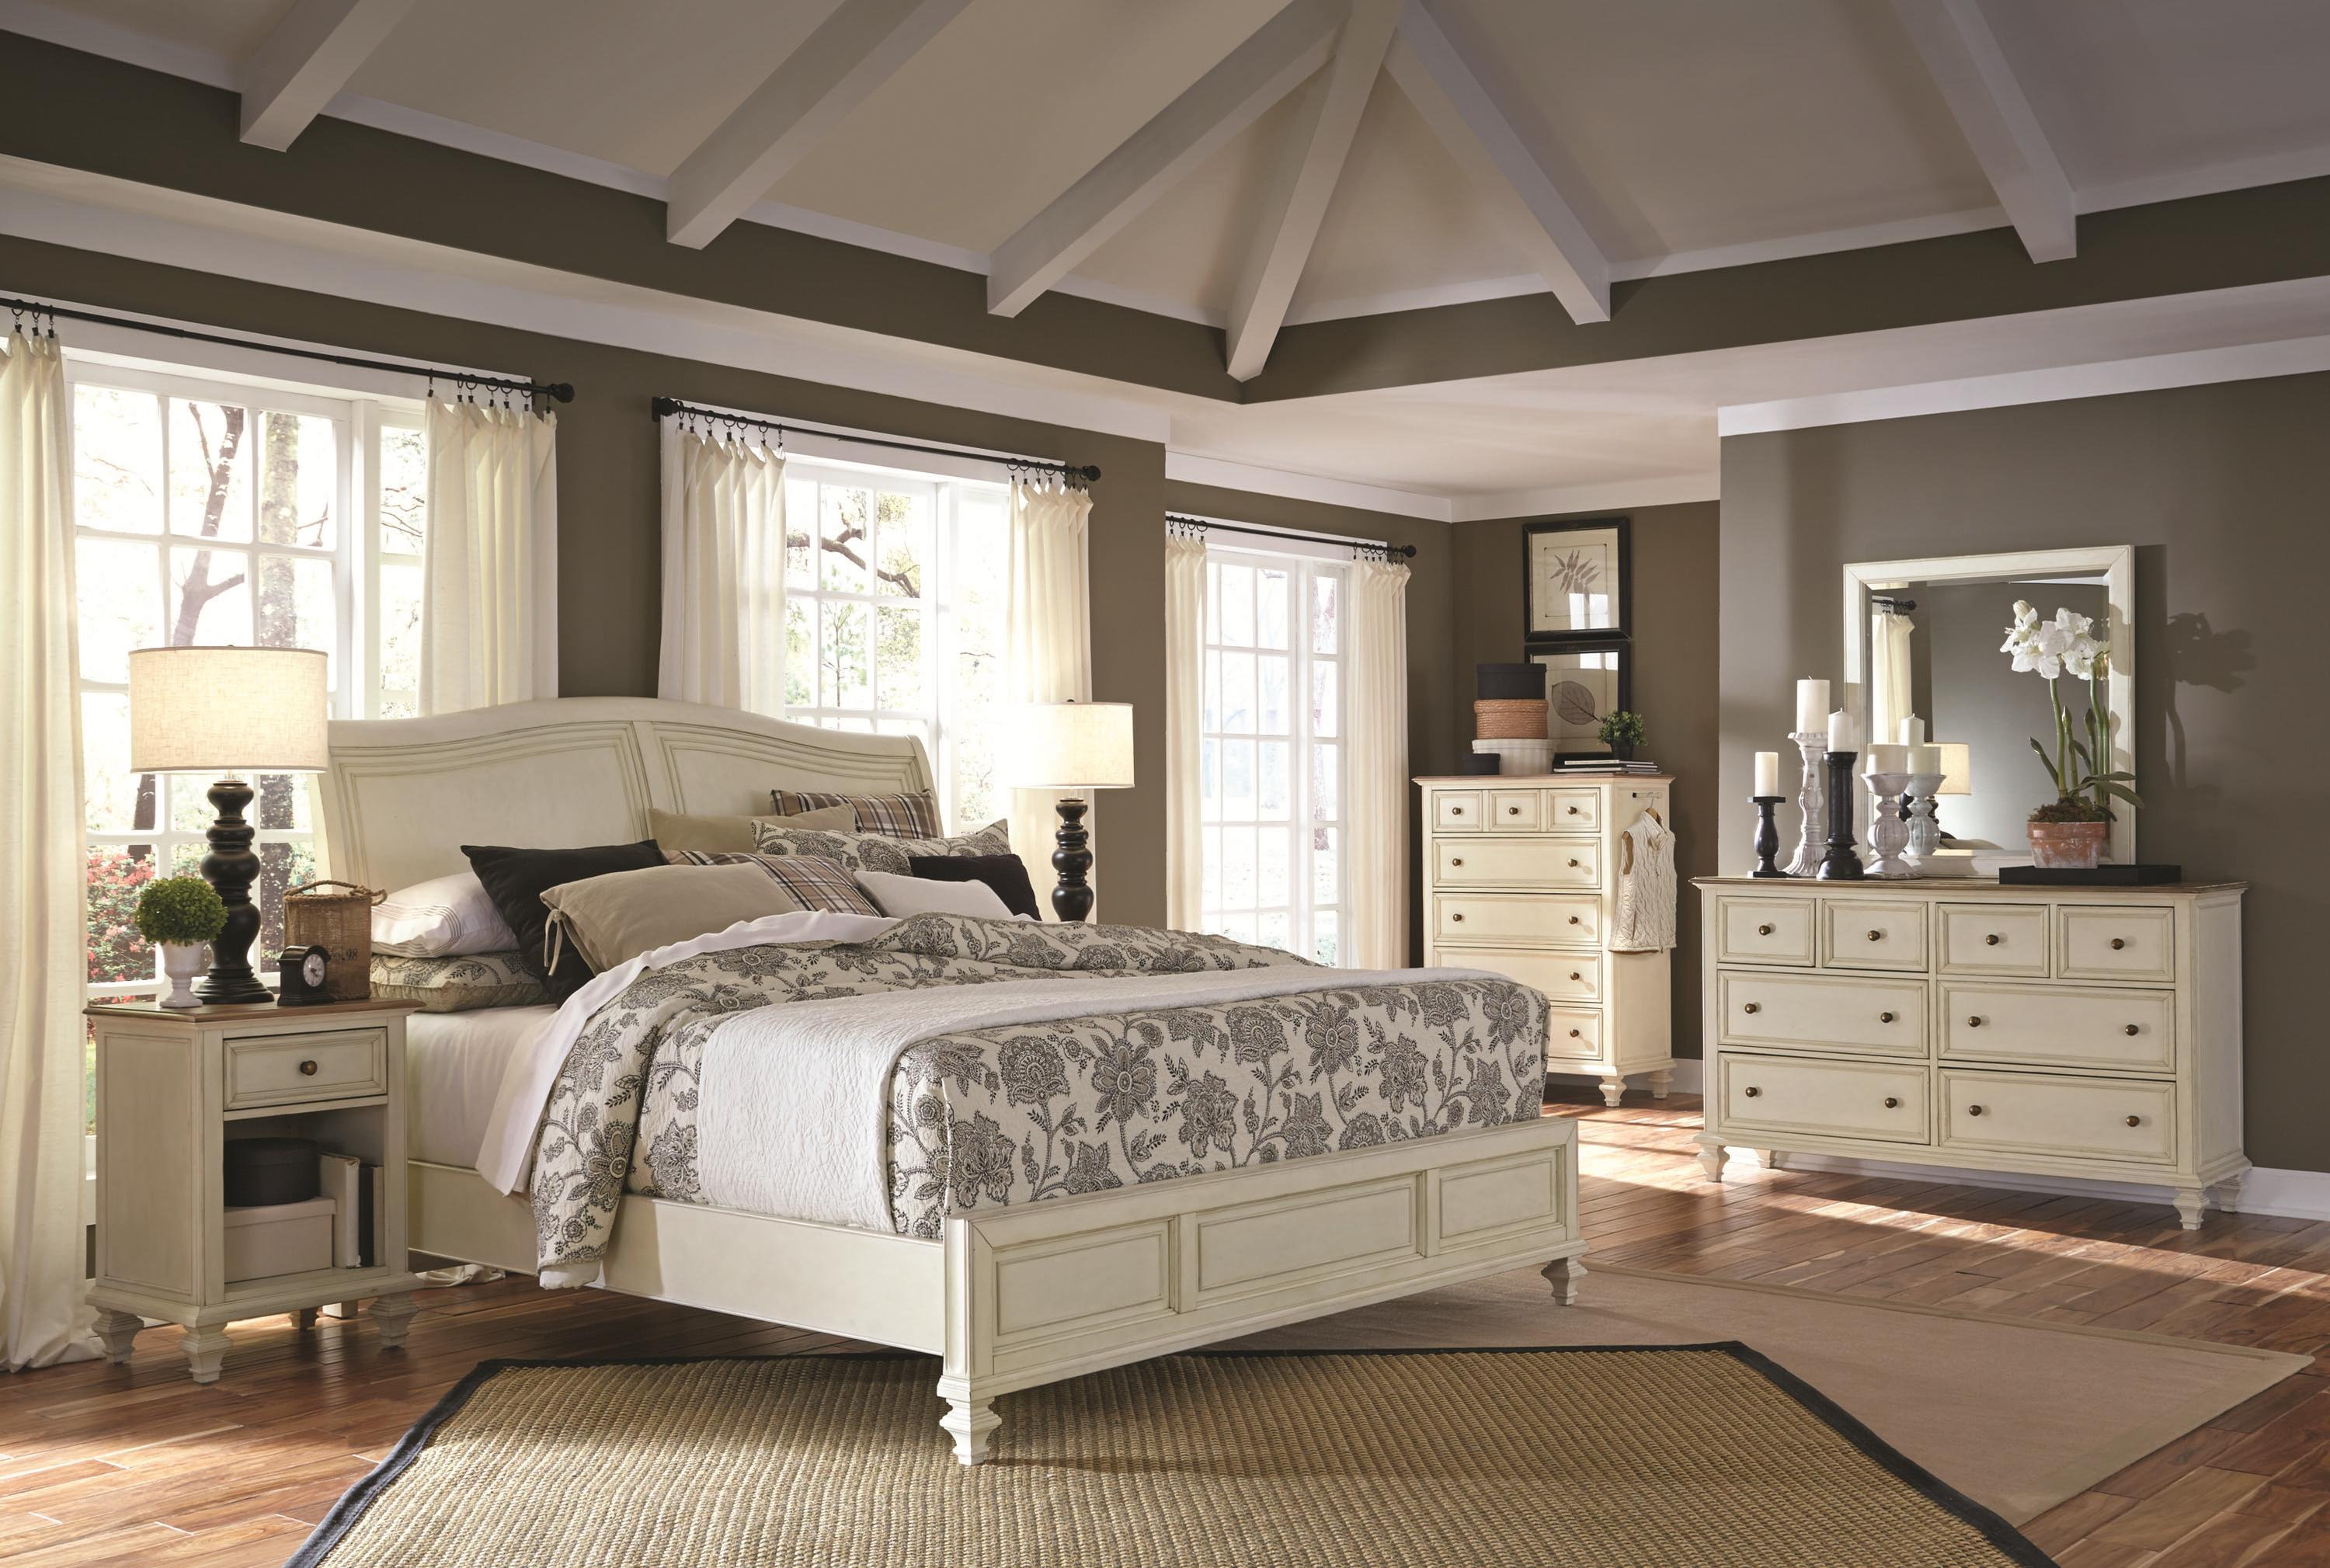 Aspenhome Cottonwood Cal King Bedroom Group - Item Number: I67 California King Bedroom Group 1